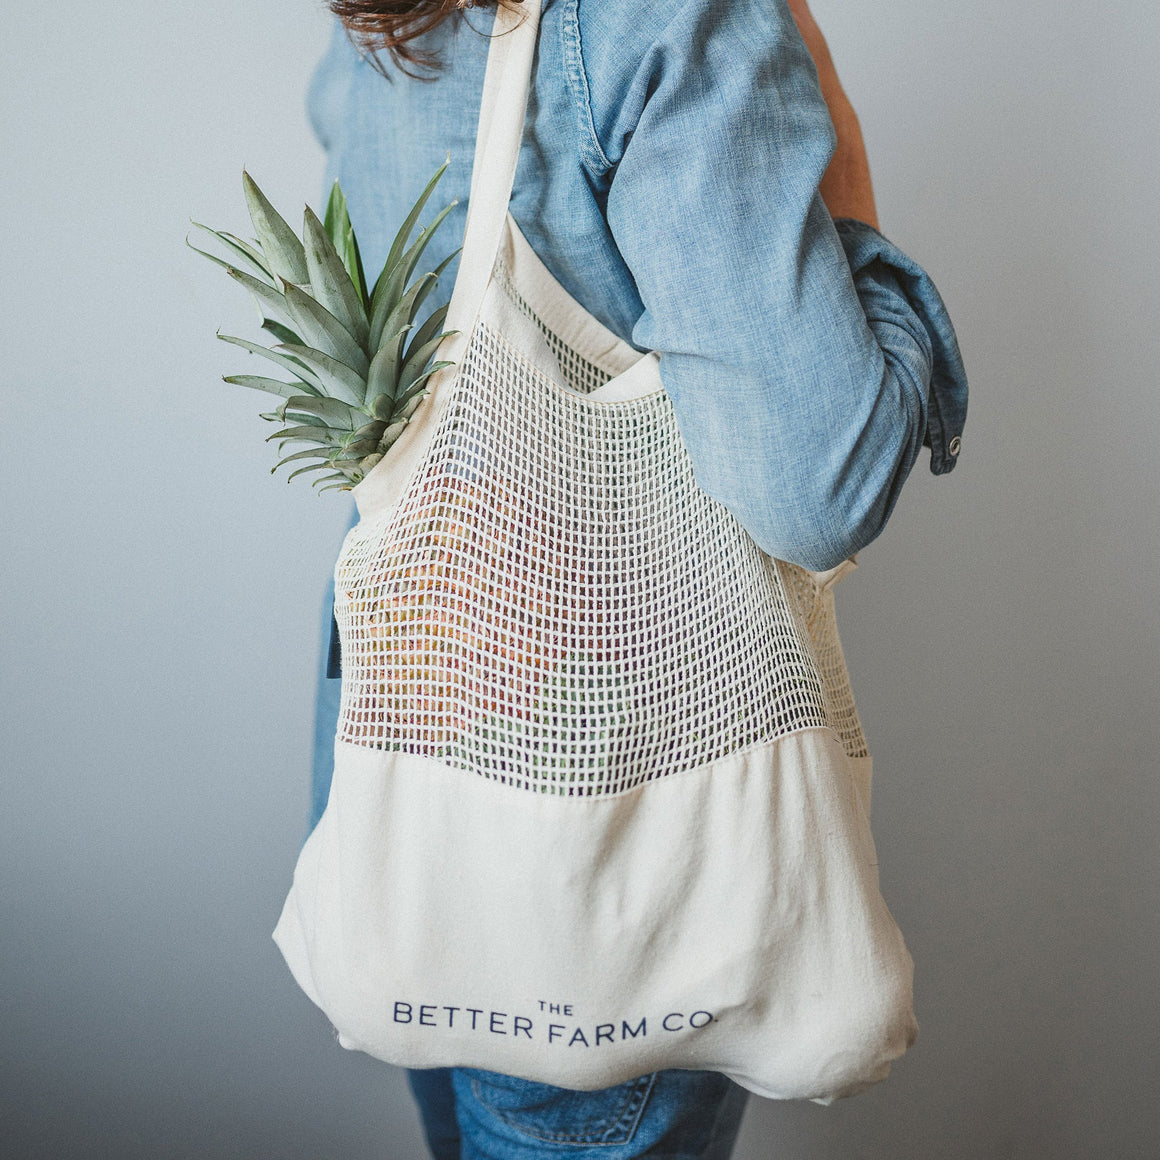 Perfect Blend Bag - The Better Farm Co.